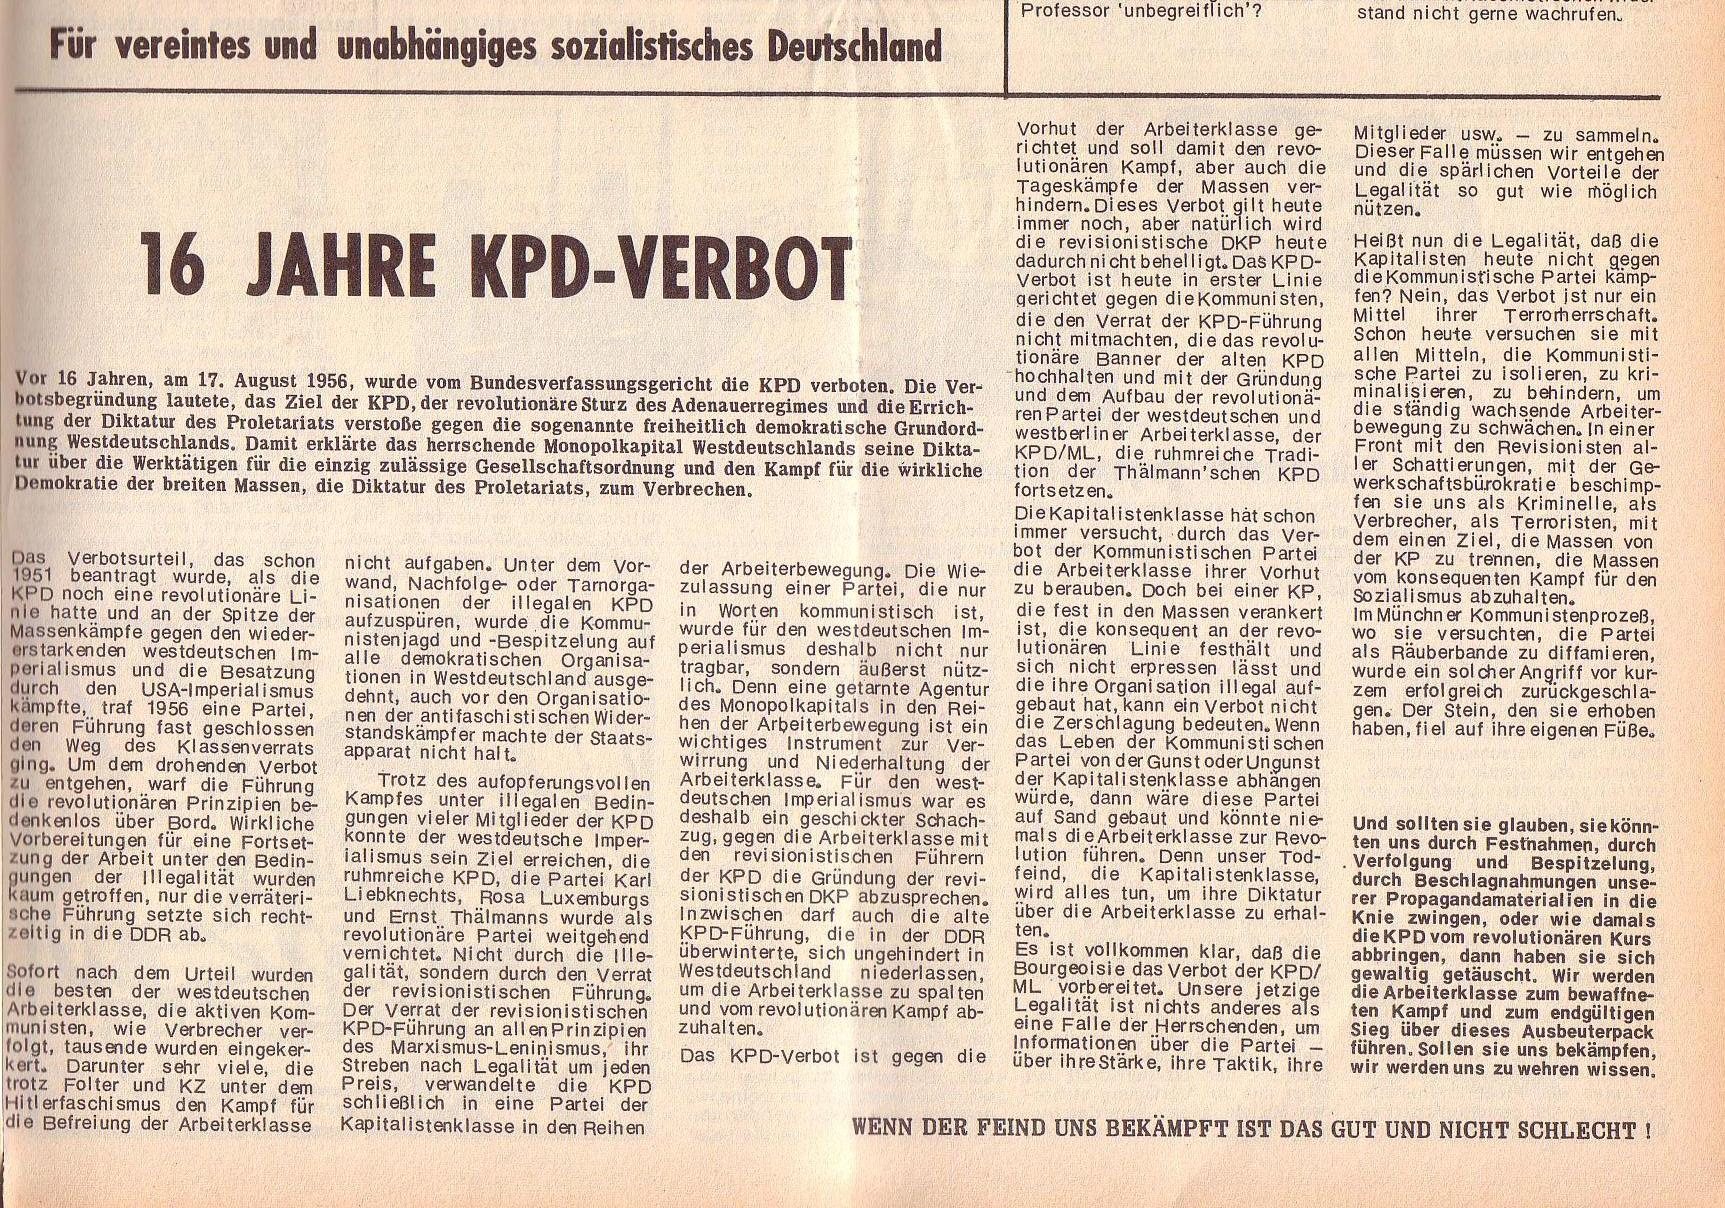 Roter Morgen, 6. Jg., 14. August 1972, Nr. 16, Seite 9b